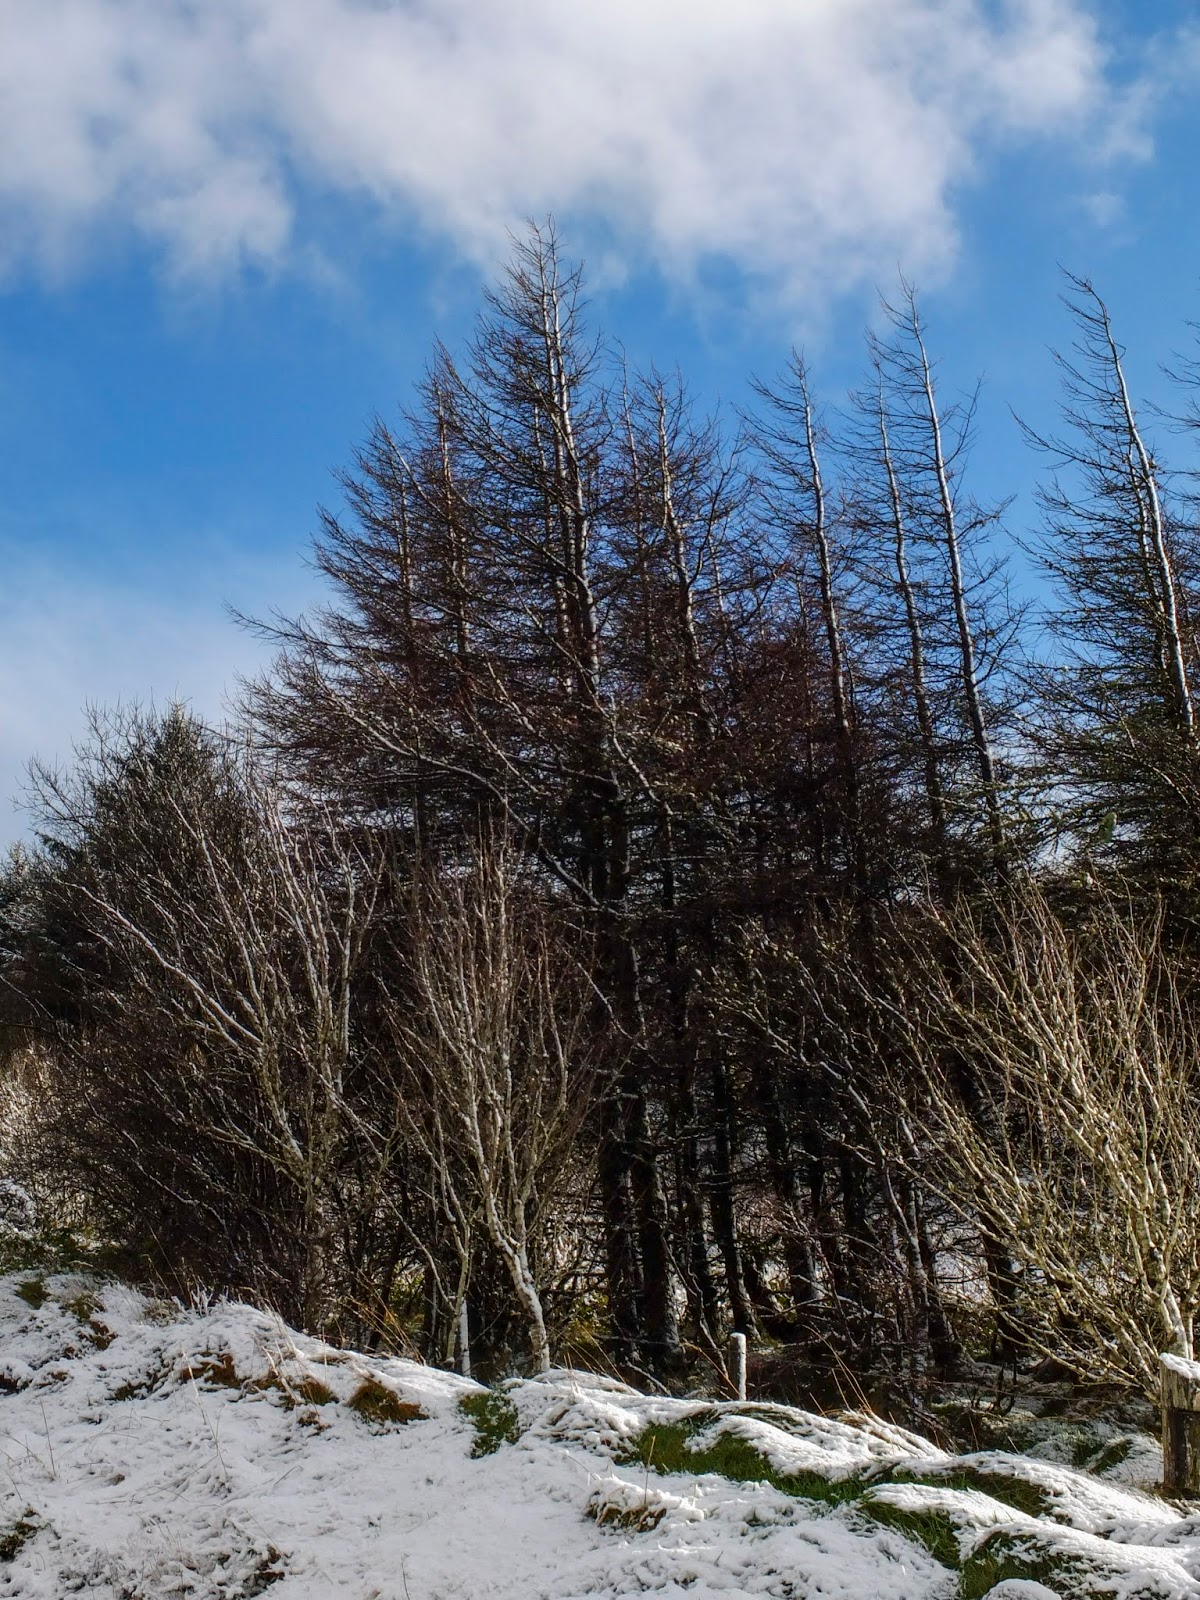 Bare trees between a blue sky with clouds and snowy ground.